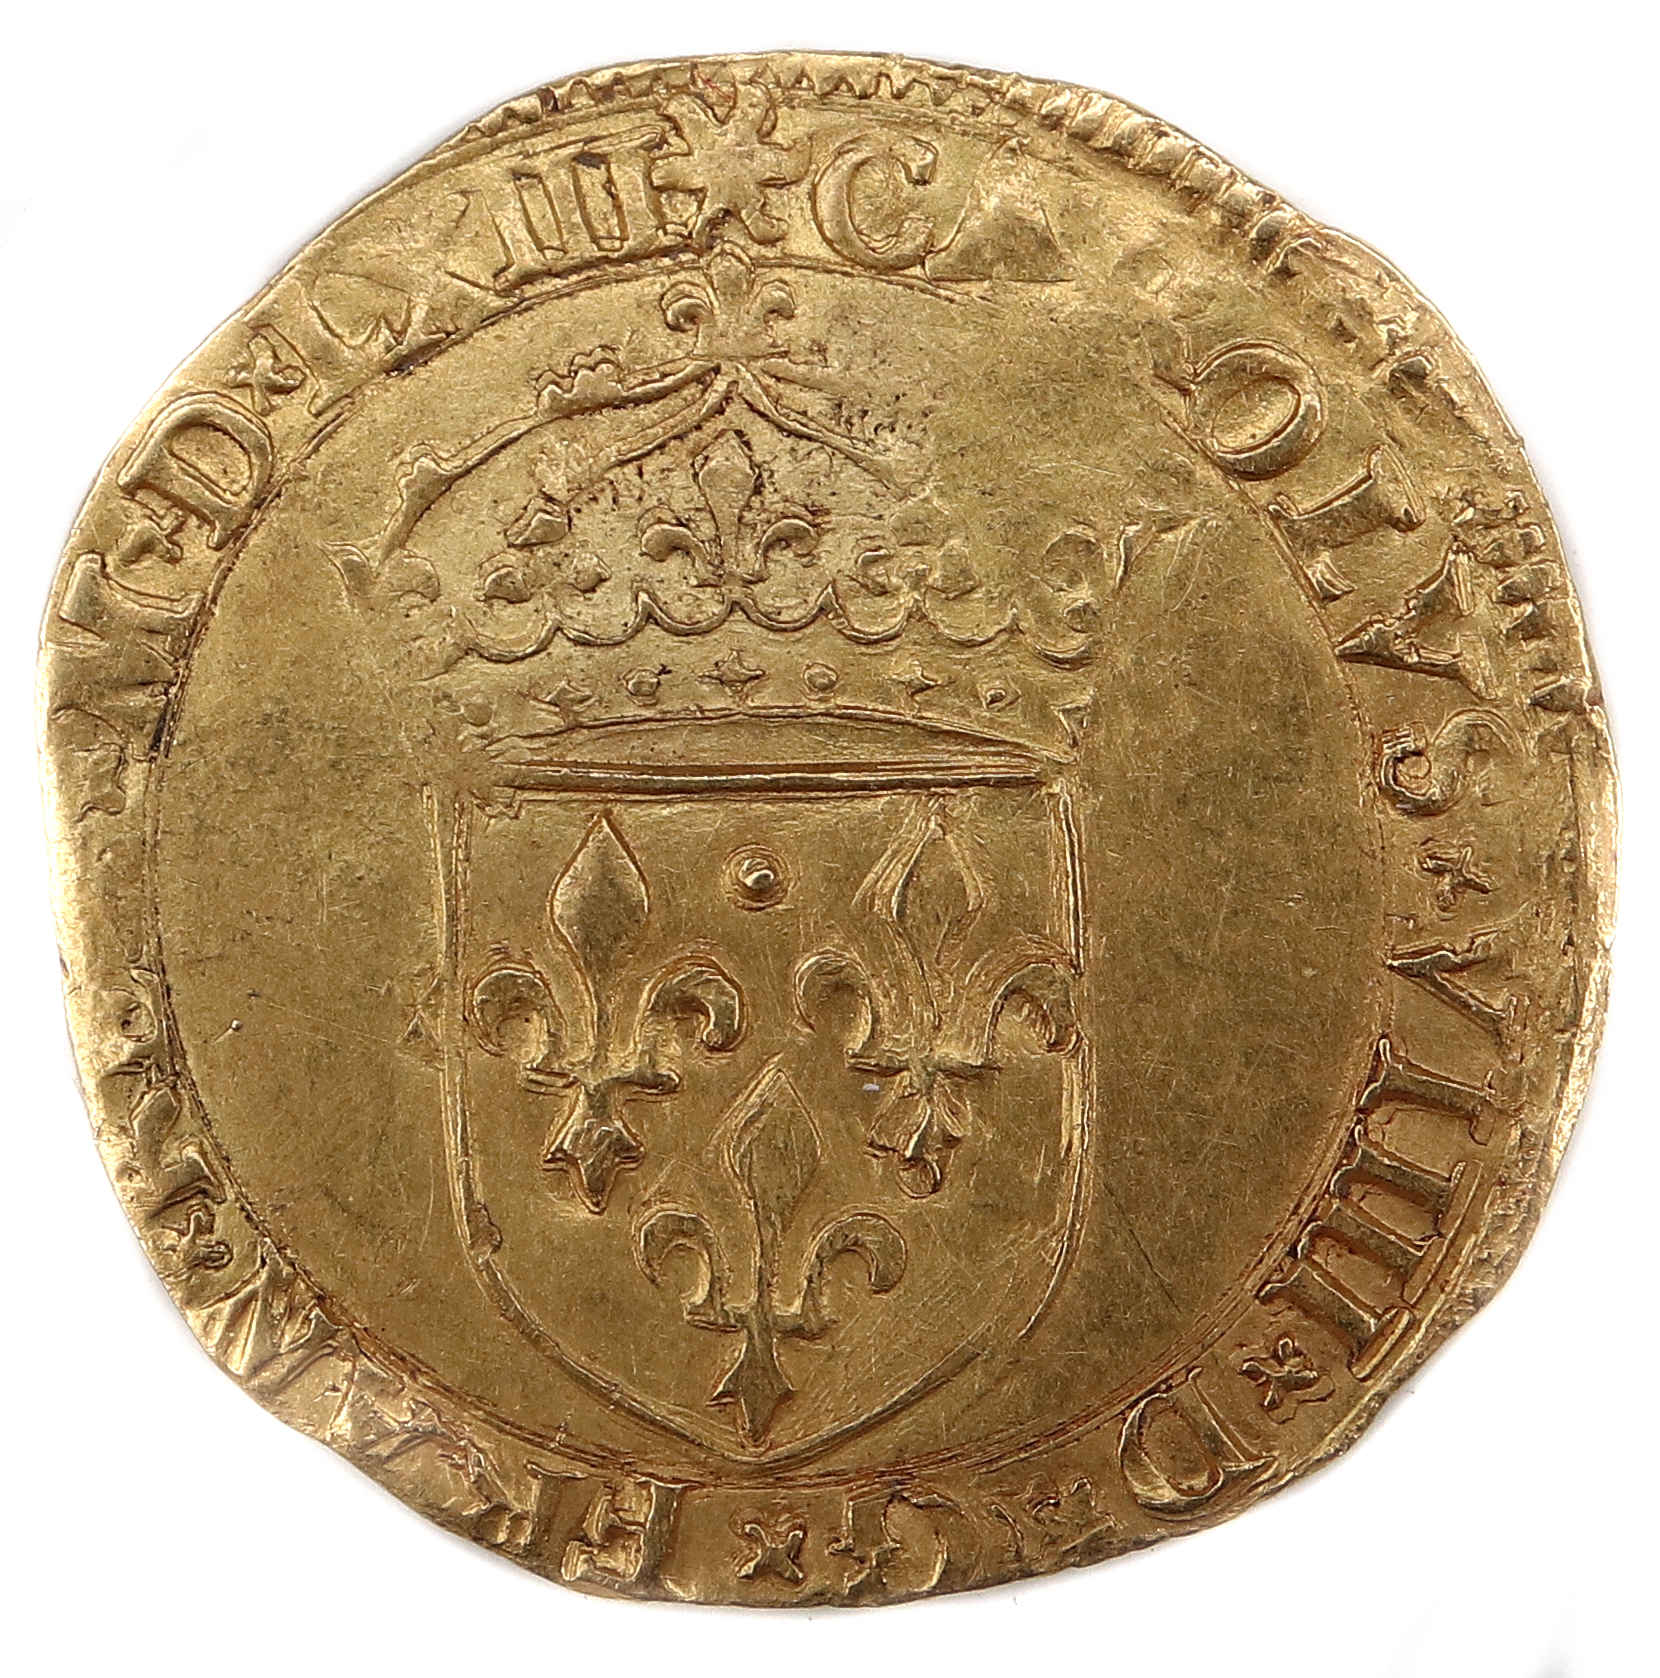 CHARLES IX ECU OR 1563 MONTPELLIER DROIT